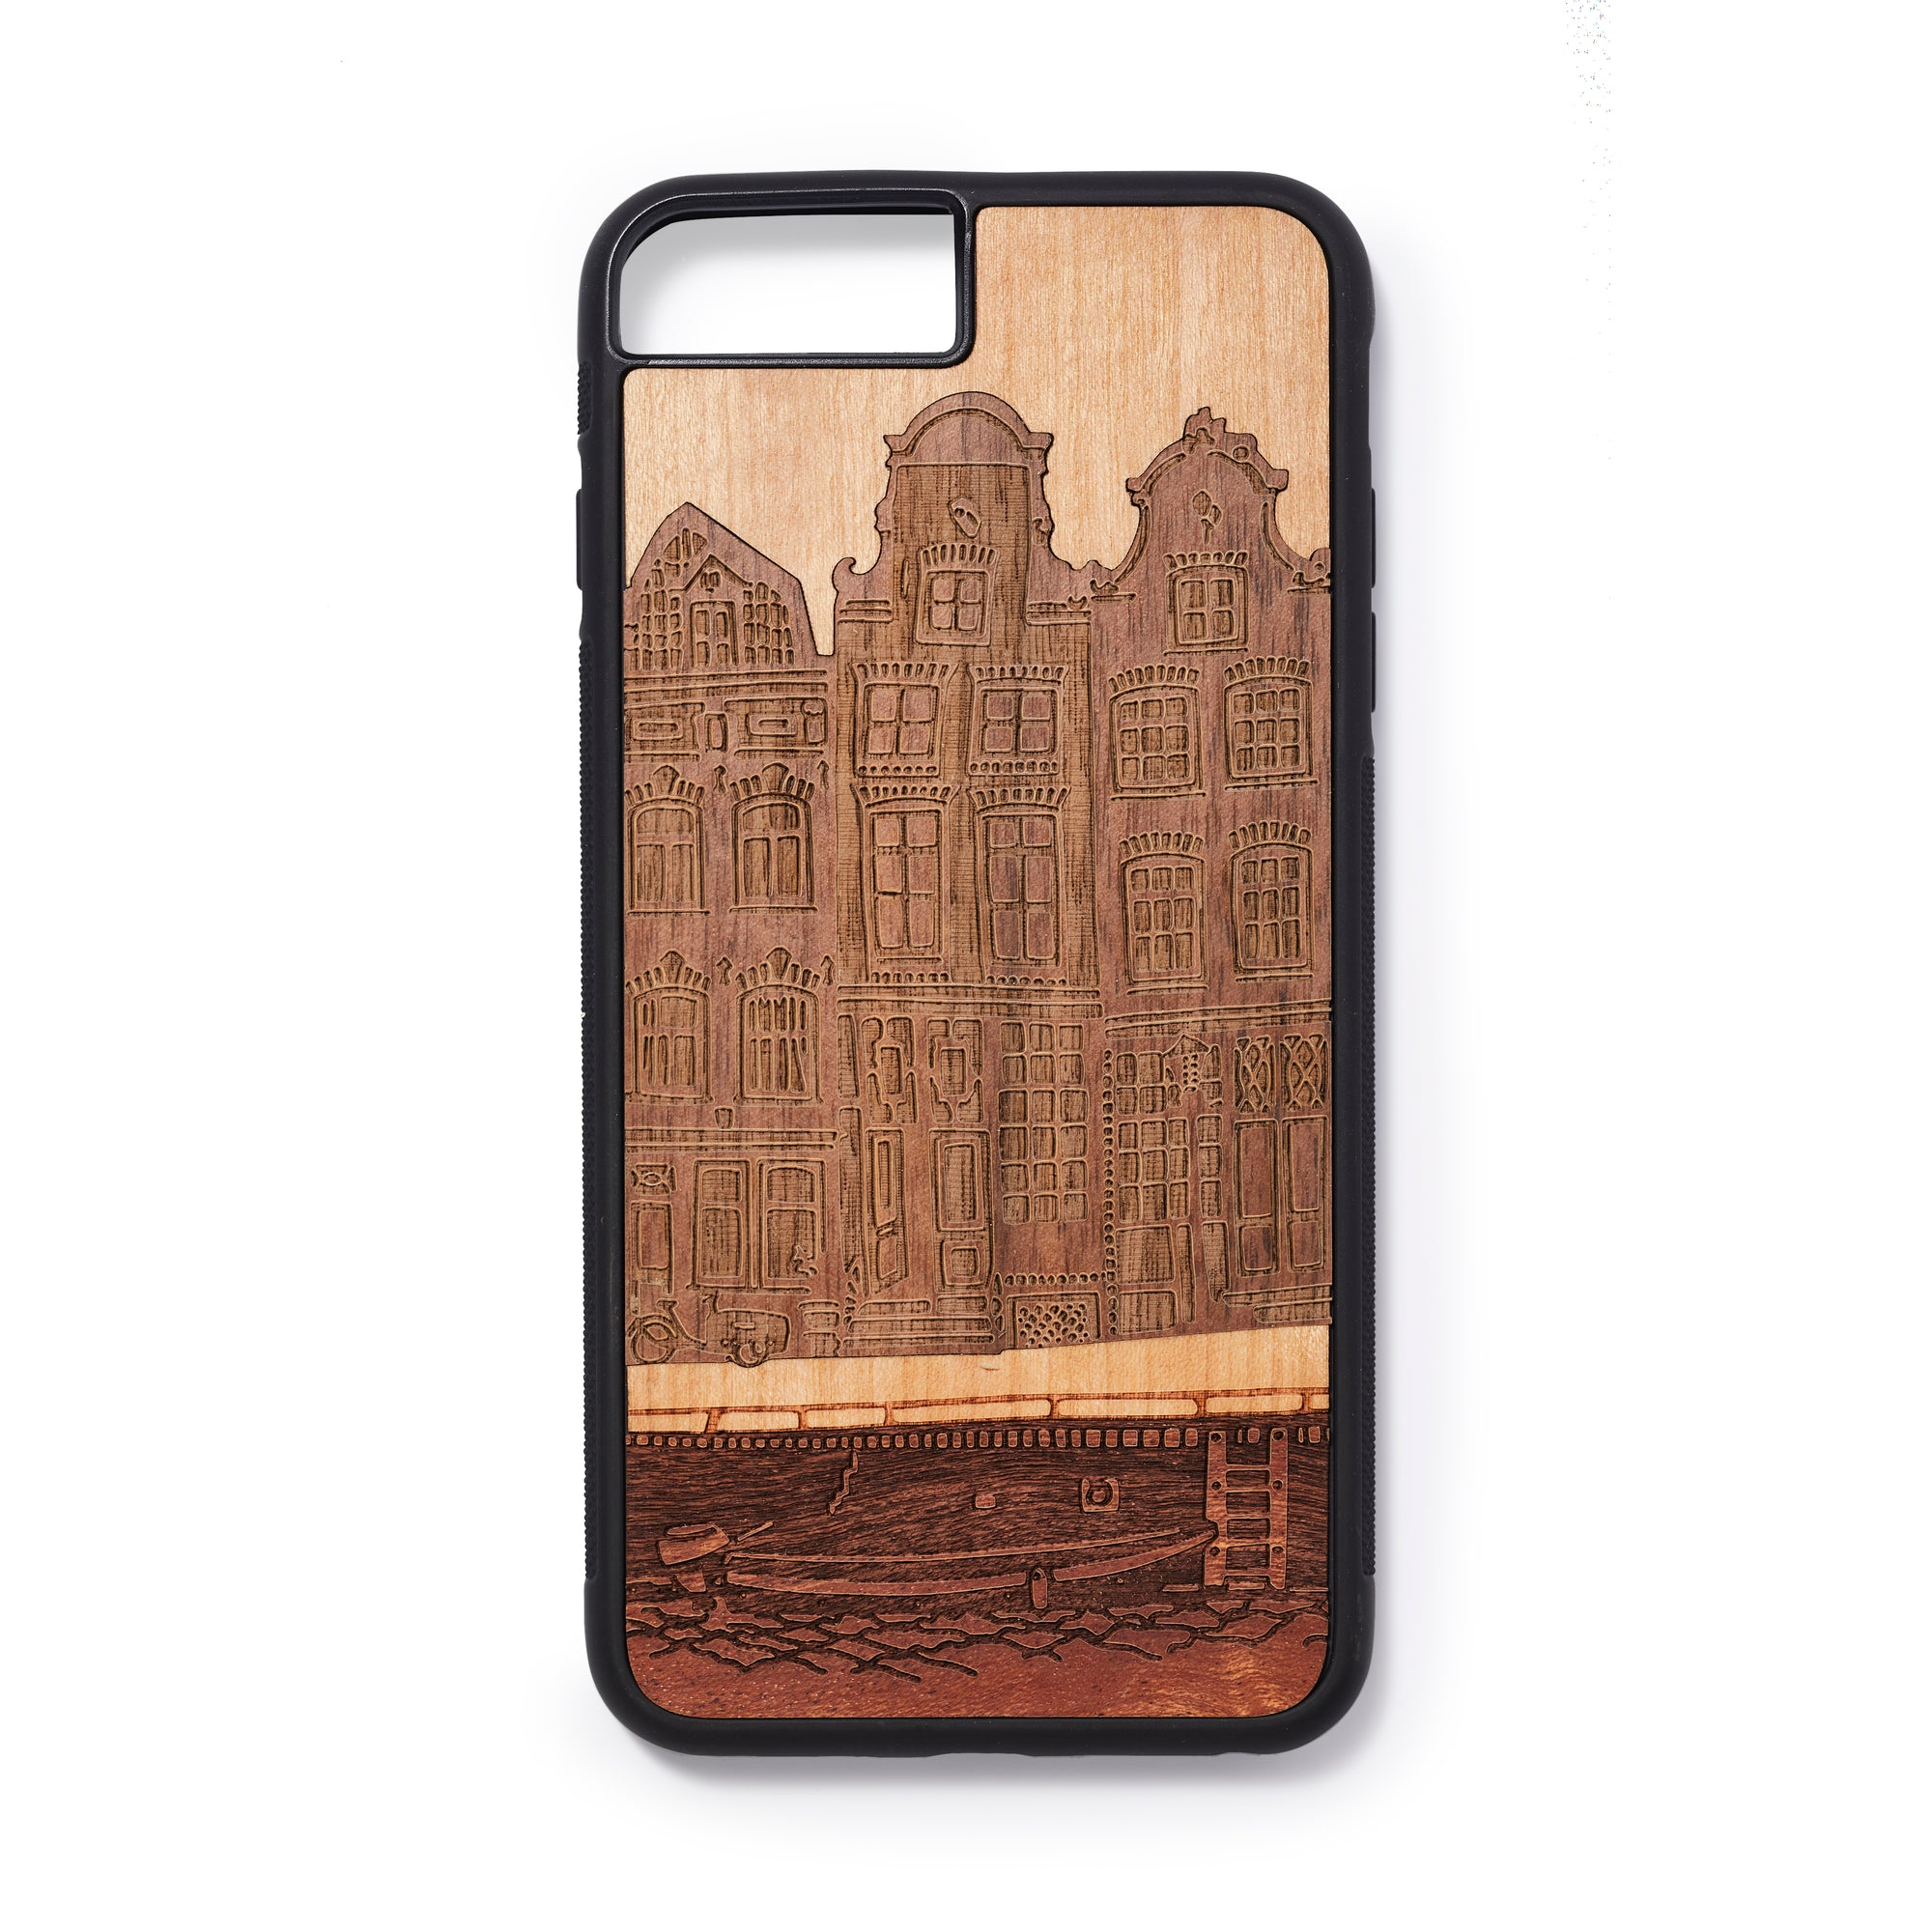 Wooden Iphone 6,7 and 8 plus back case house design - Woodstylz